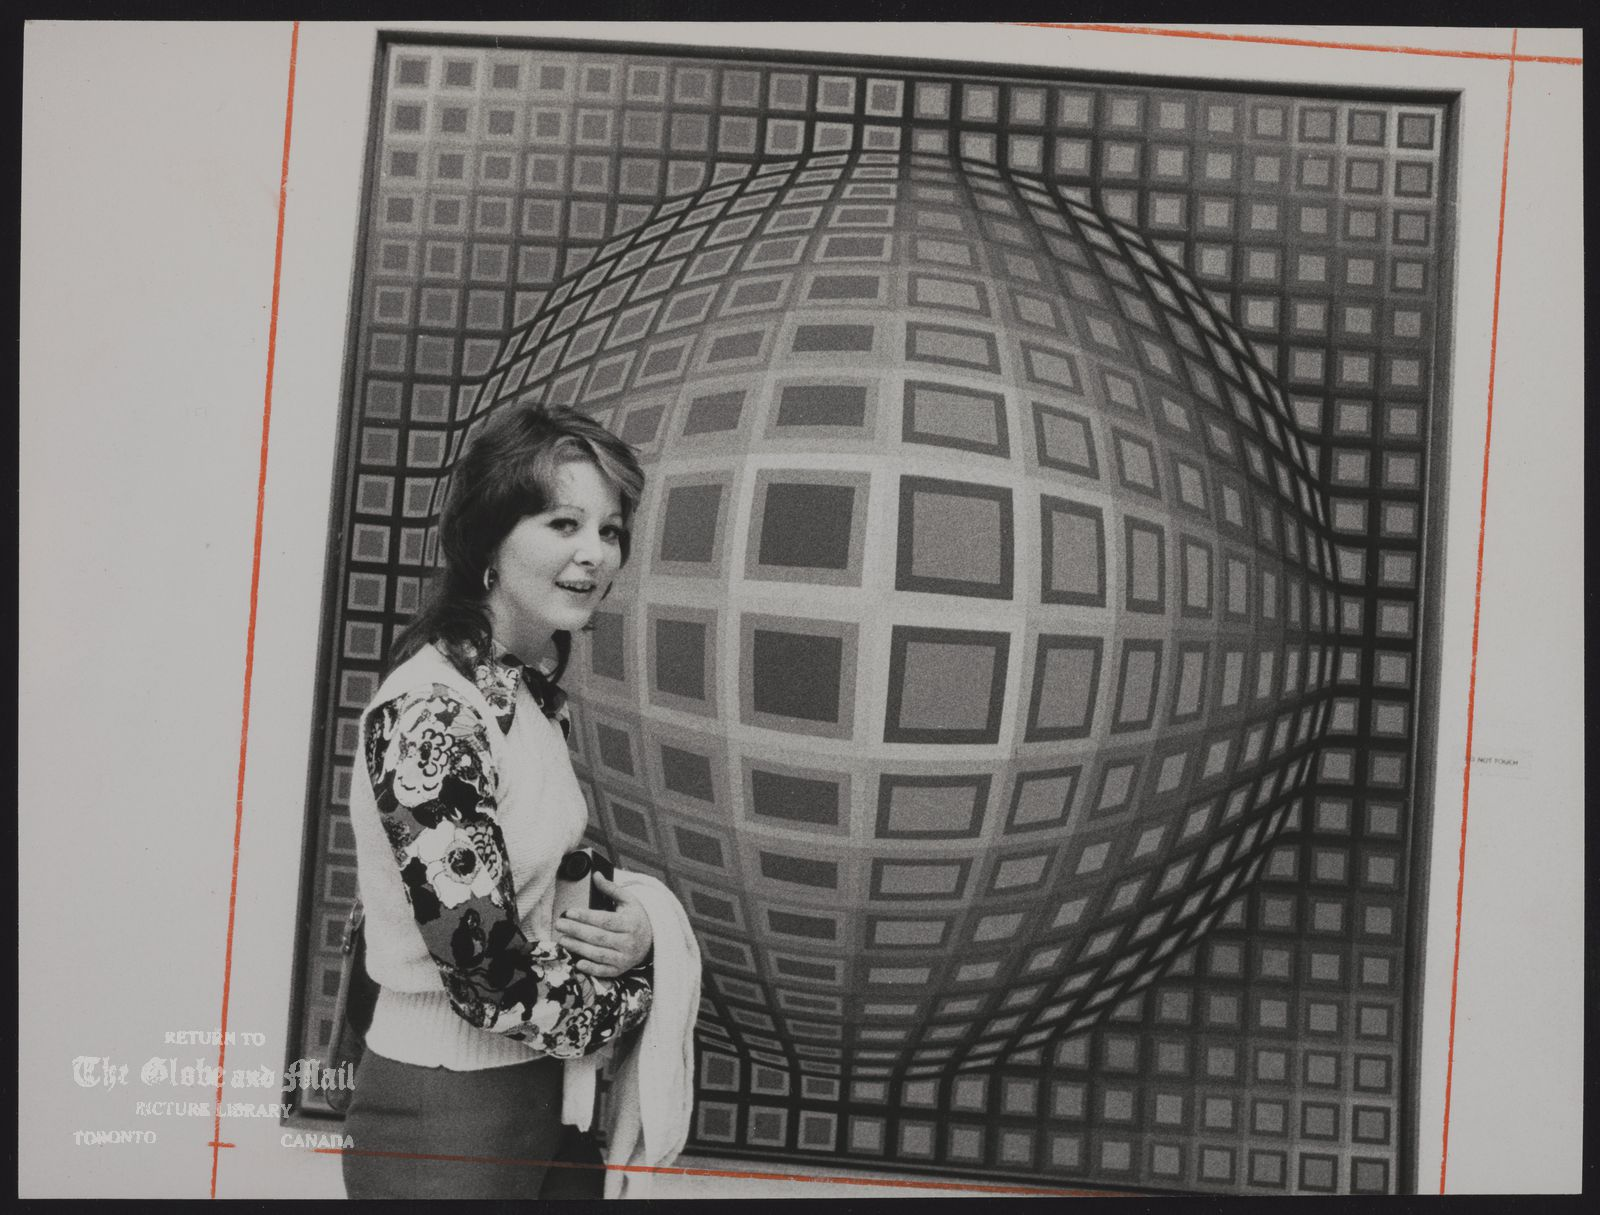 ALBRIGHT-KNOX ART GALLERY (Buffalo, N.Y.) Joanne Frecso of Perth Amboy, N.J., stands by Vega Nor, a 1969 oil on canvas by Victor Vasarely.